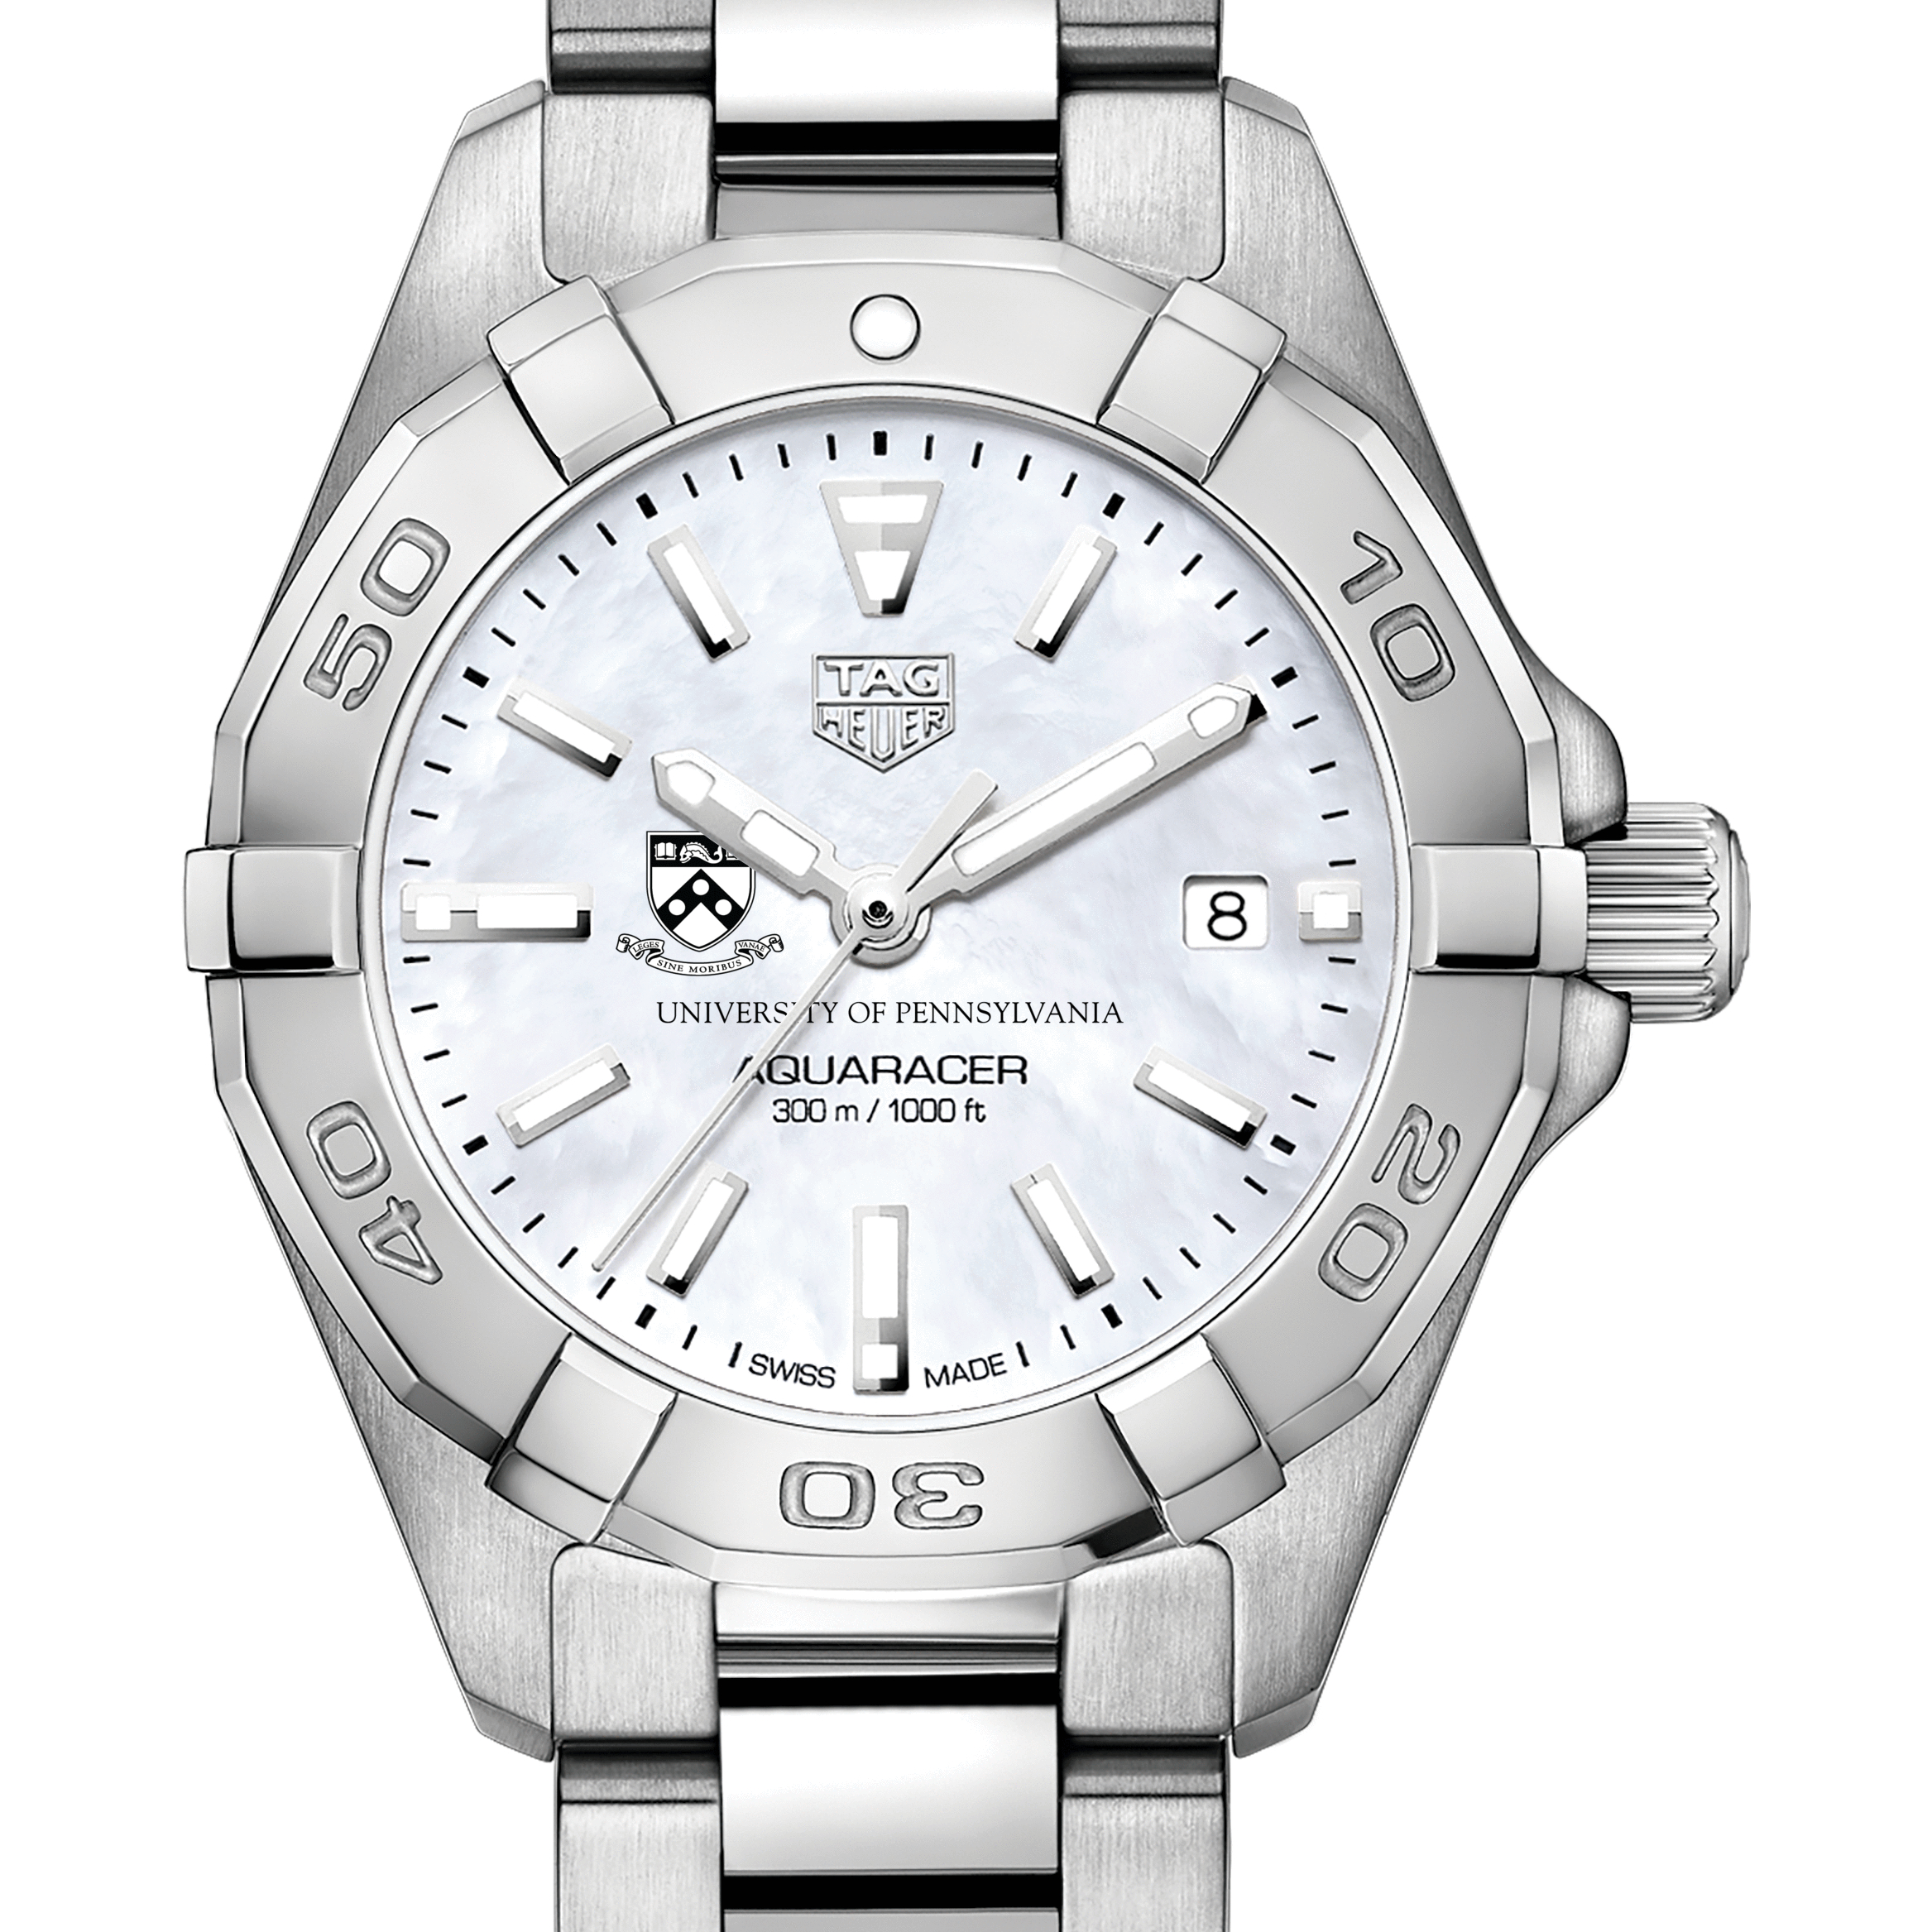 Penn Women's TAG Heuer Steel Aquaracer with MOP Dial